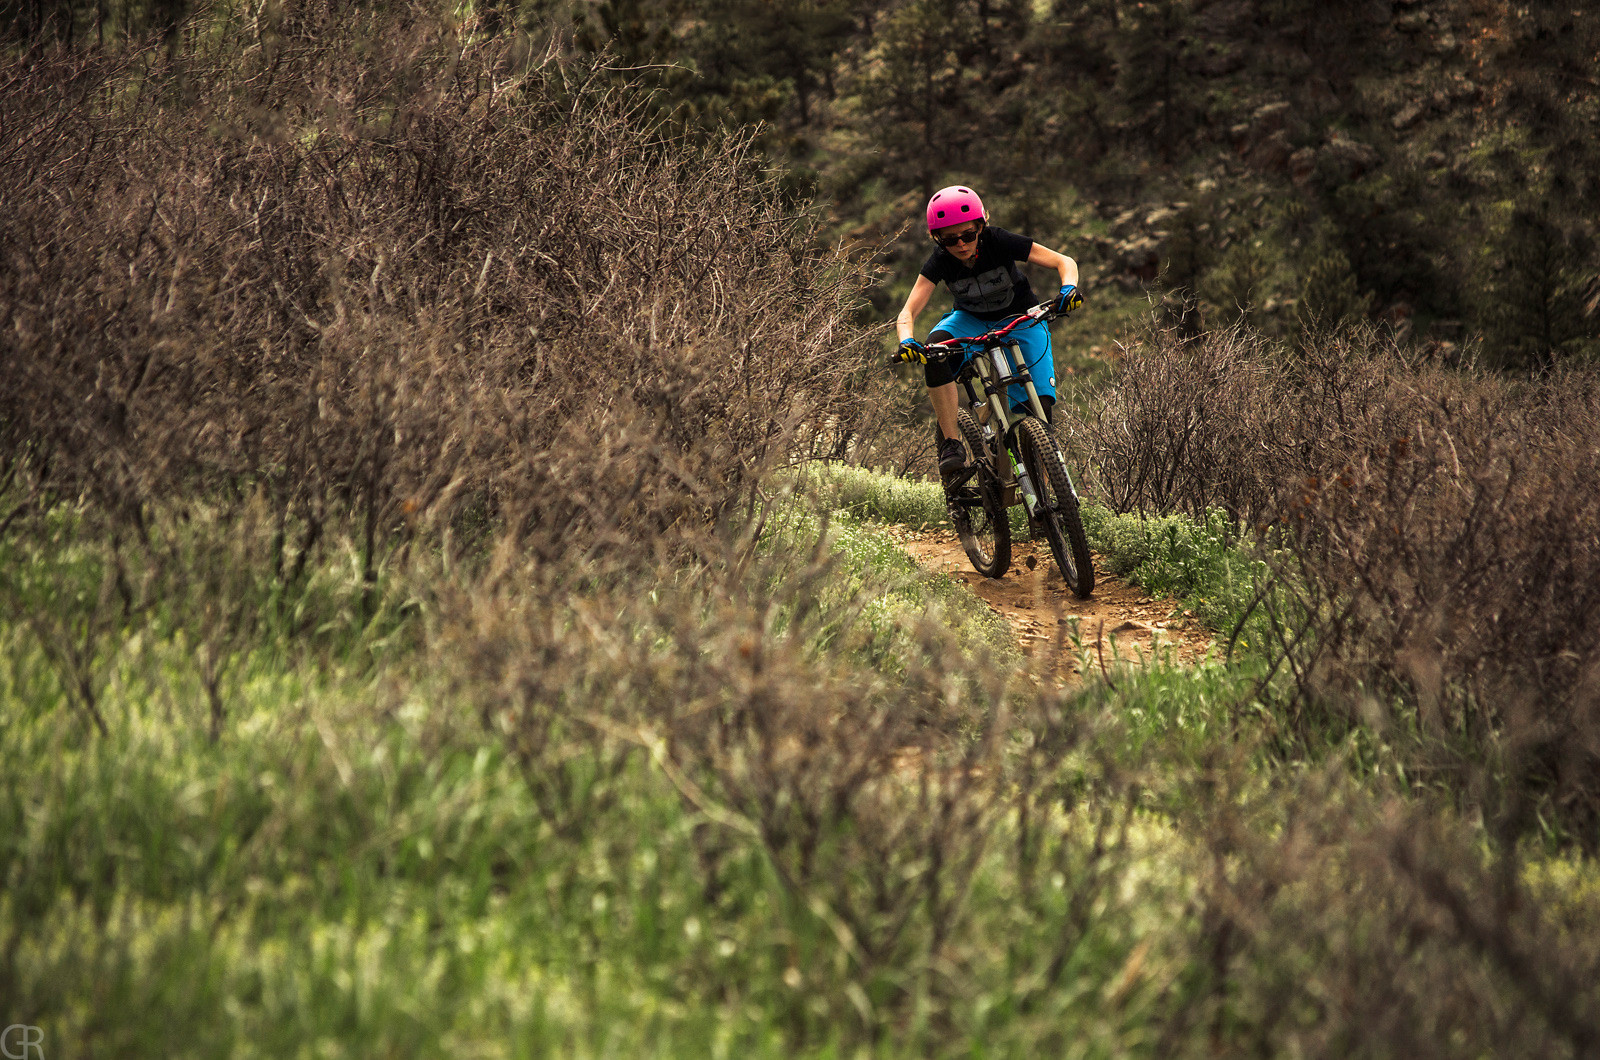 Picture Rock - rhiannon - Mountain Biking Pictures - Vital MTB